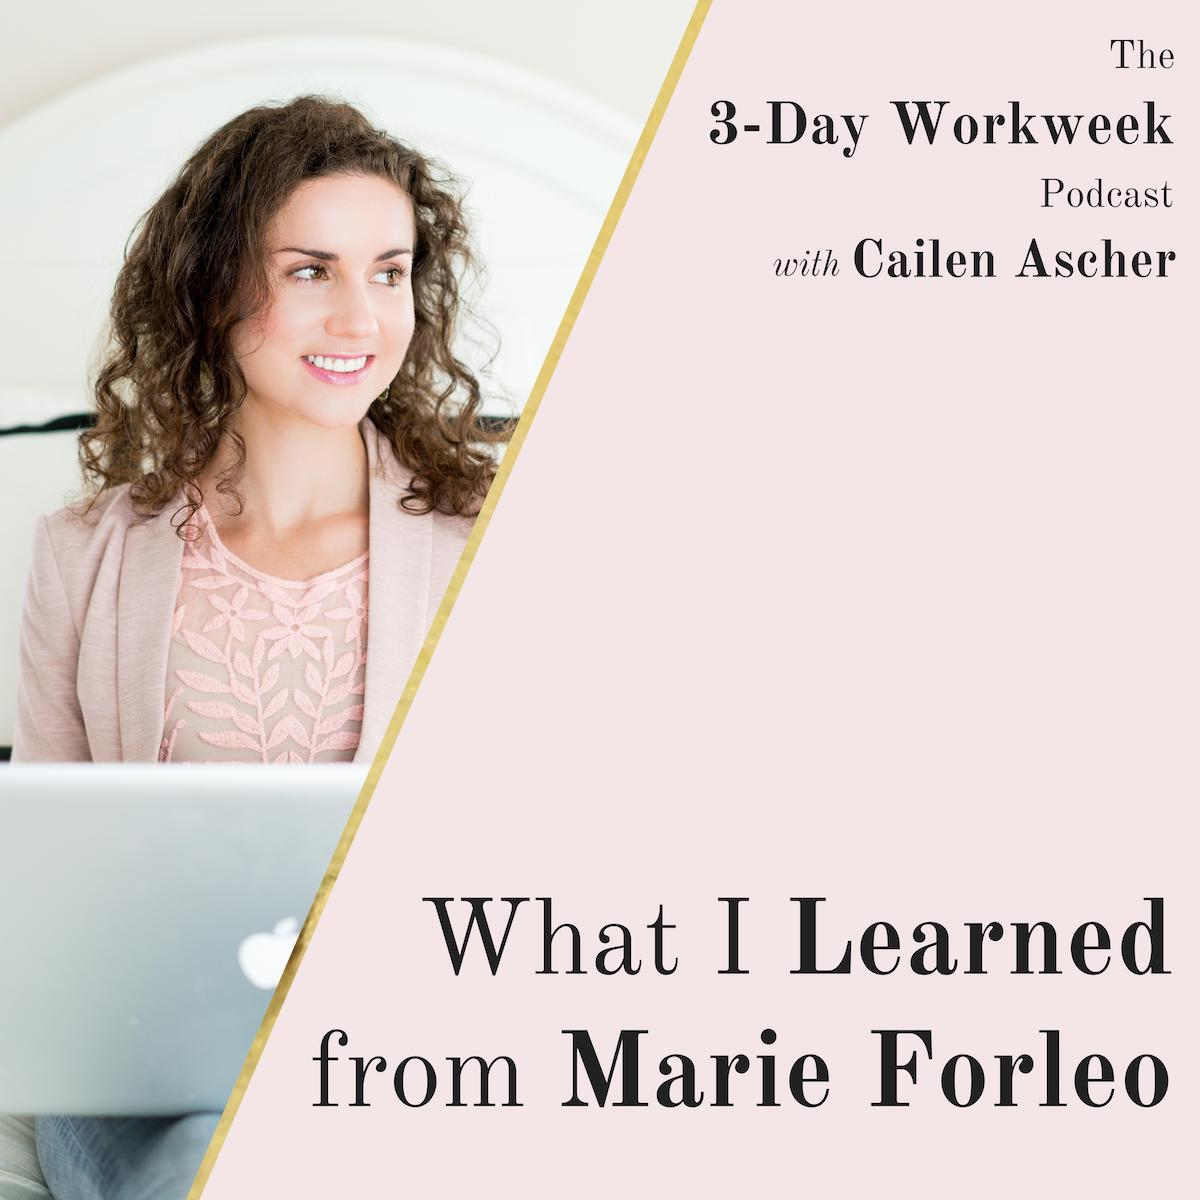 The 3-Day Workweek Podcast with Cailen Ascher - 2019-06-26 - What I Learned from Marie Forleo.jpg